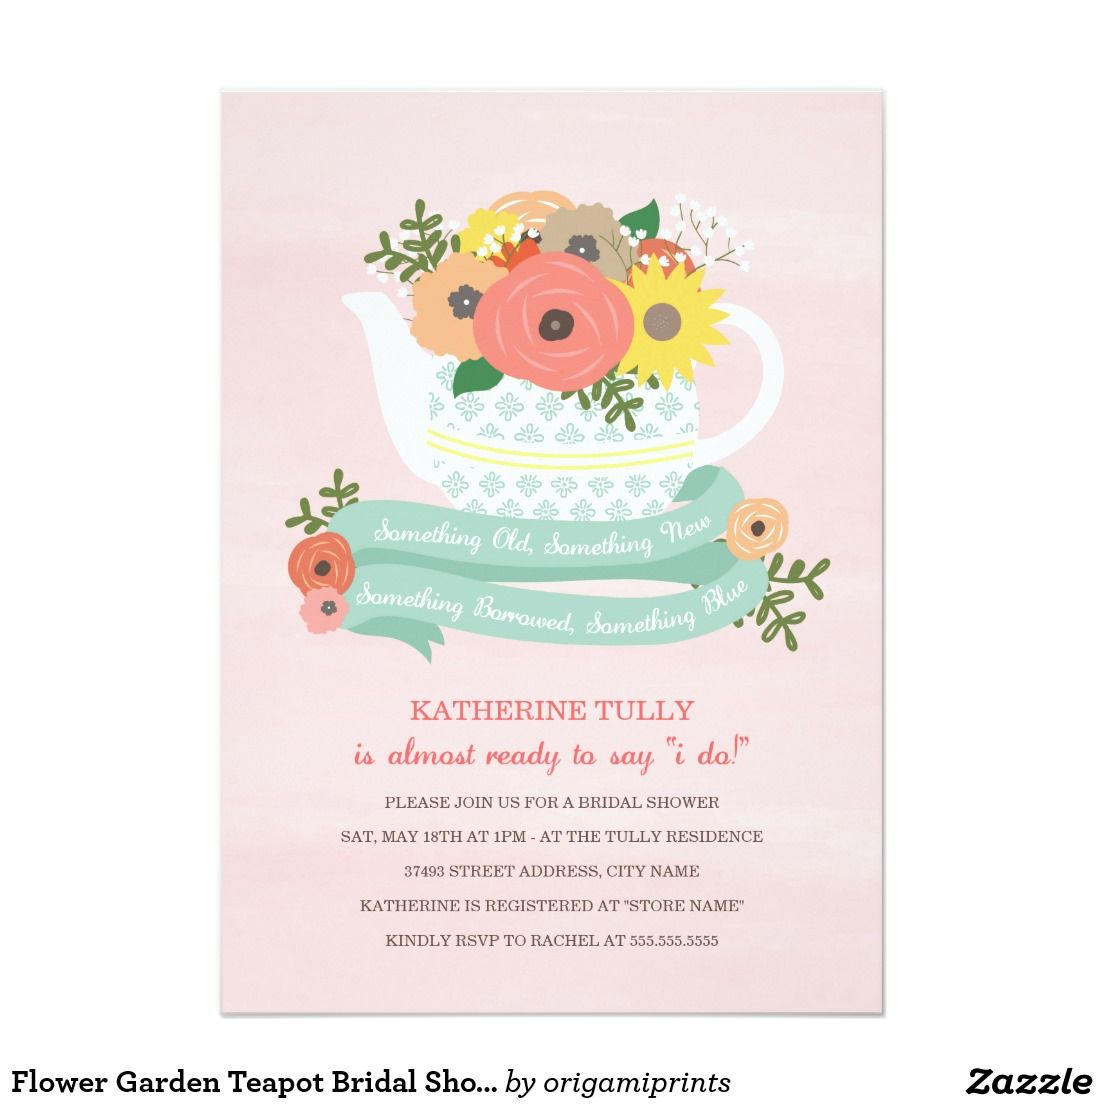 Flower garden teapot bridal shower invitation bridal shower flower garden teapot bridal shower invitation filmwisefo